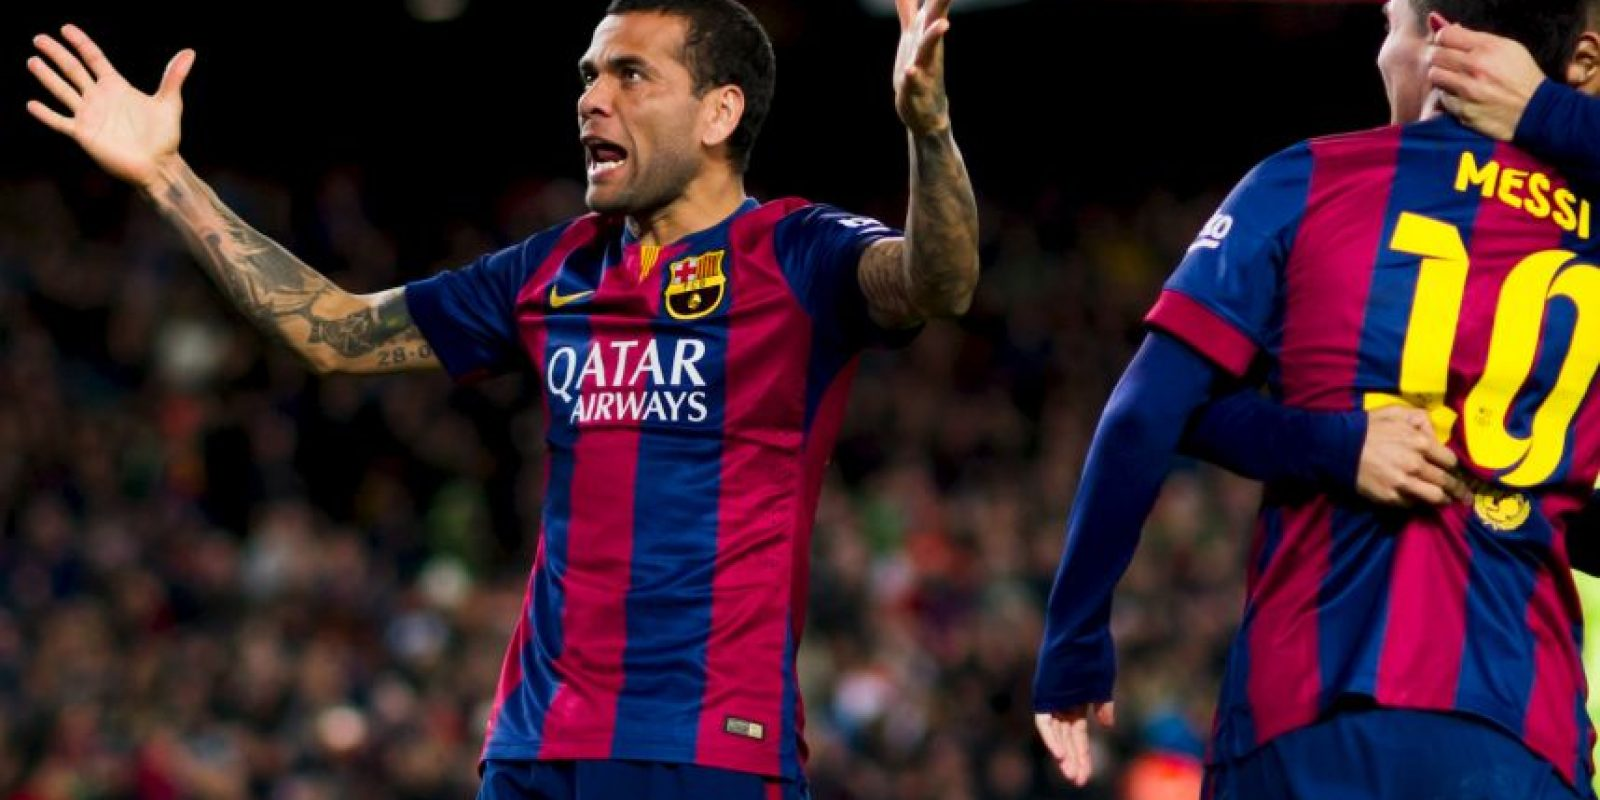 Dani Alves Foto: Getty